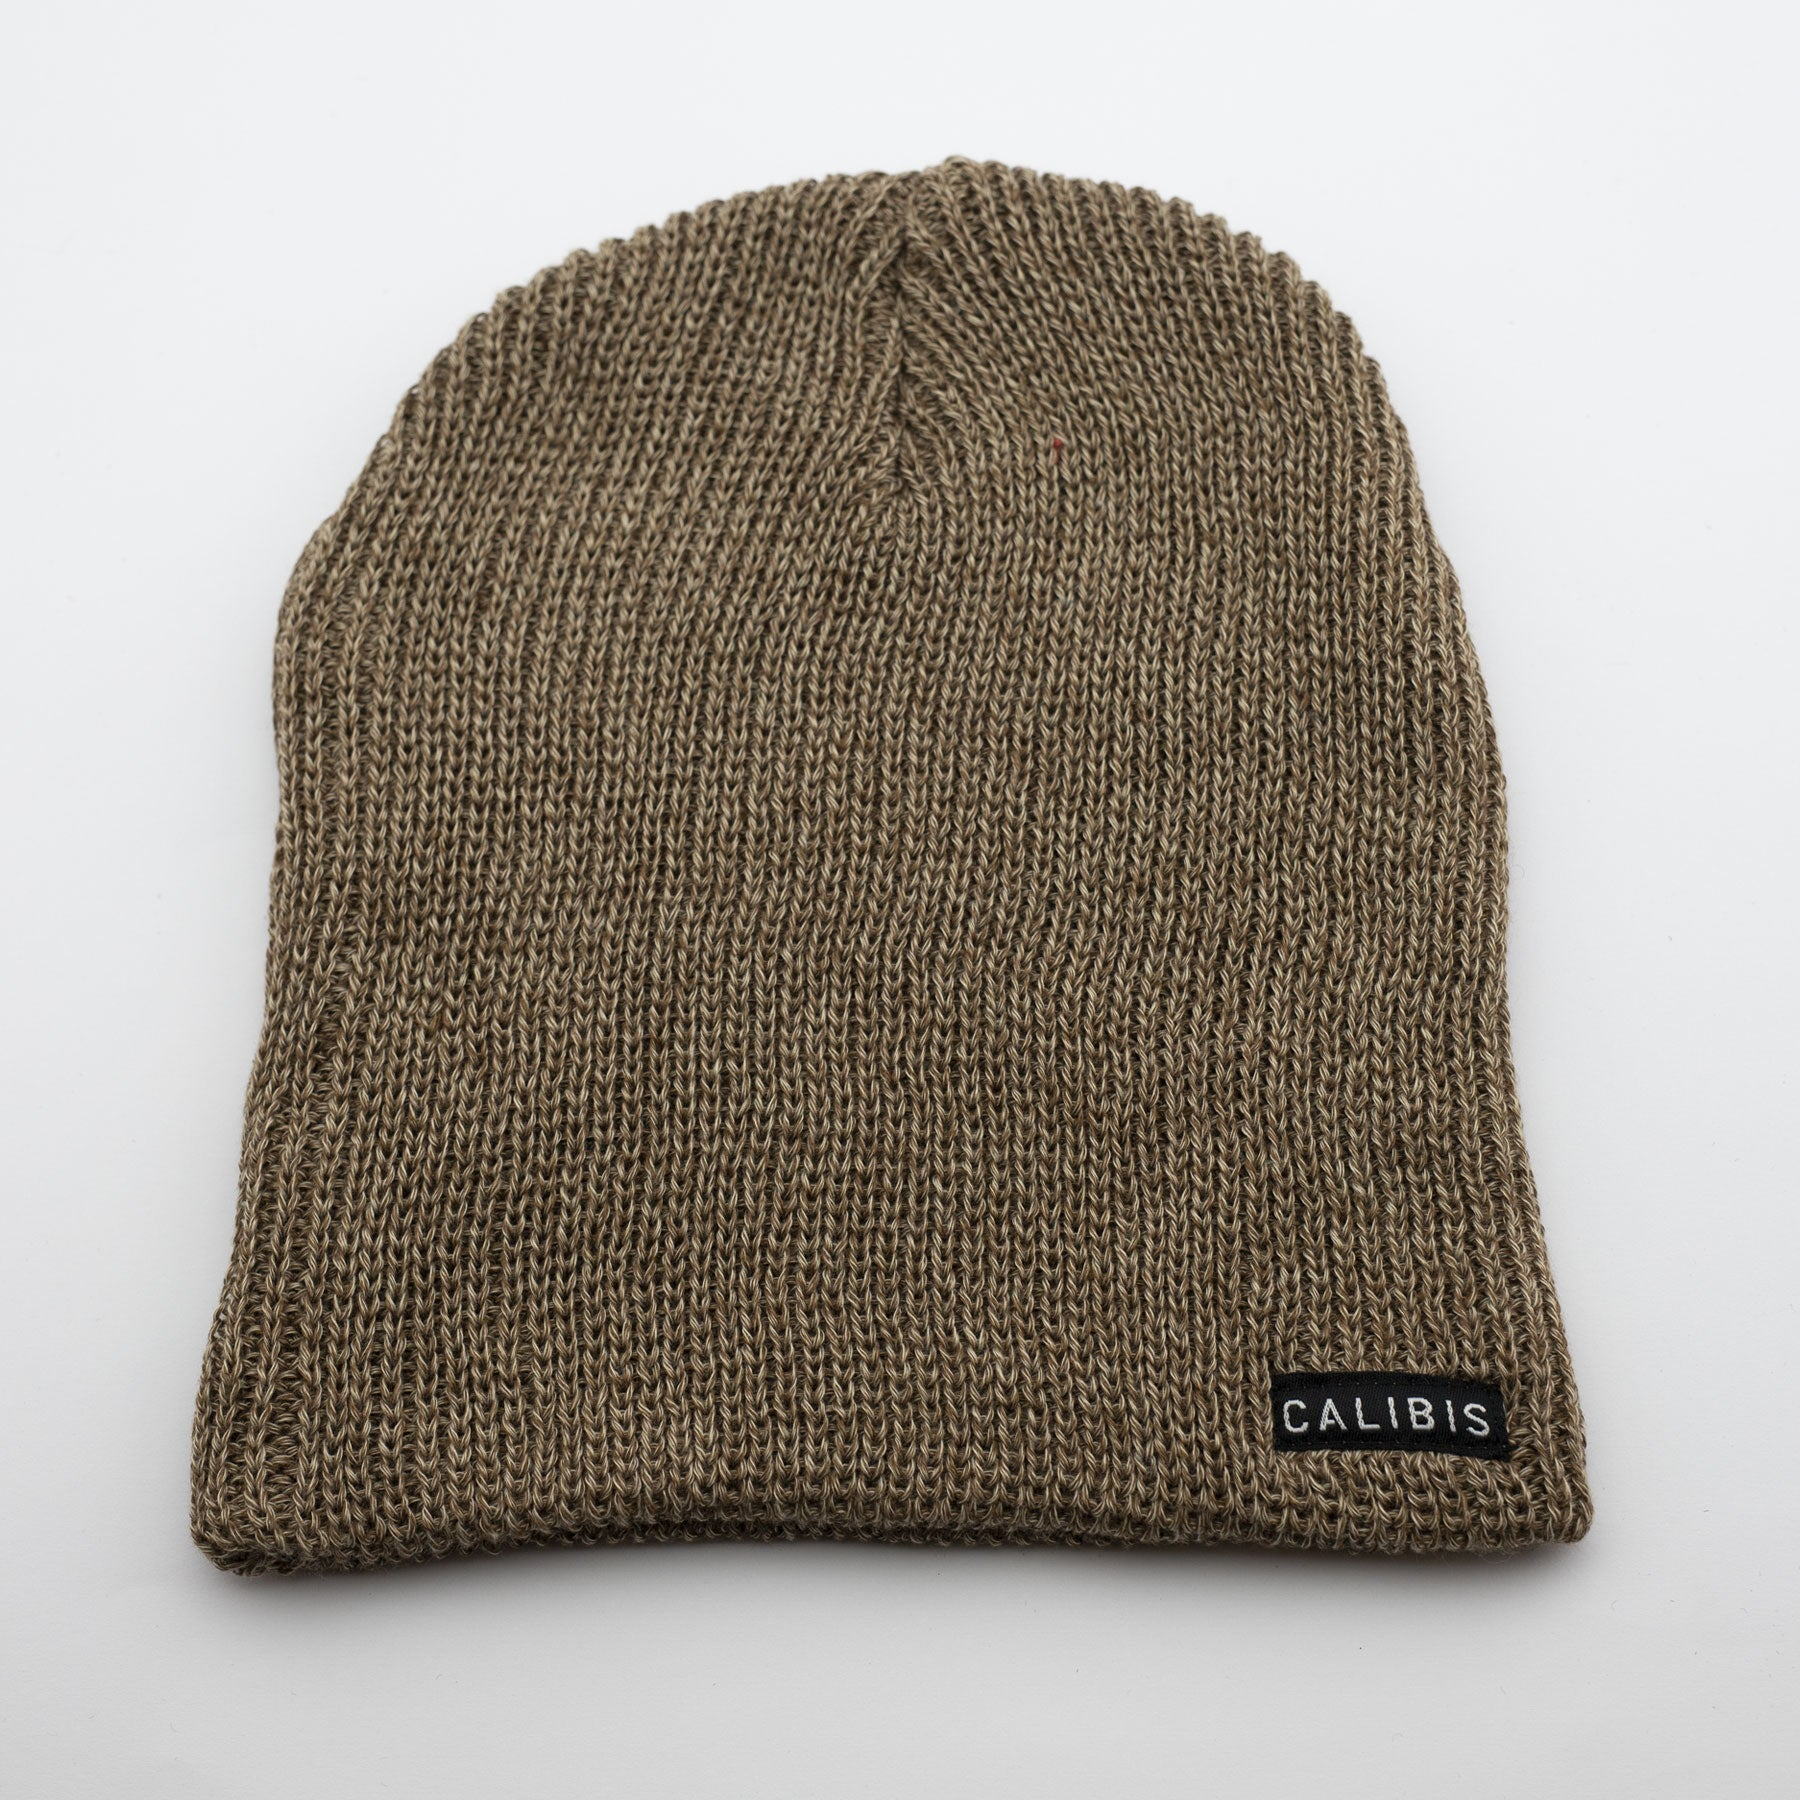 Gold Slouchy Beanie by Calibis Clothing